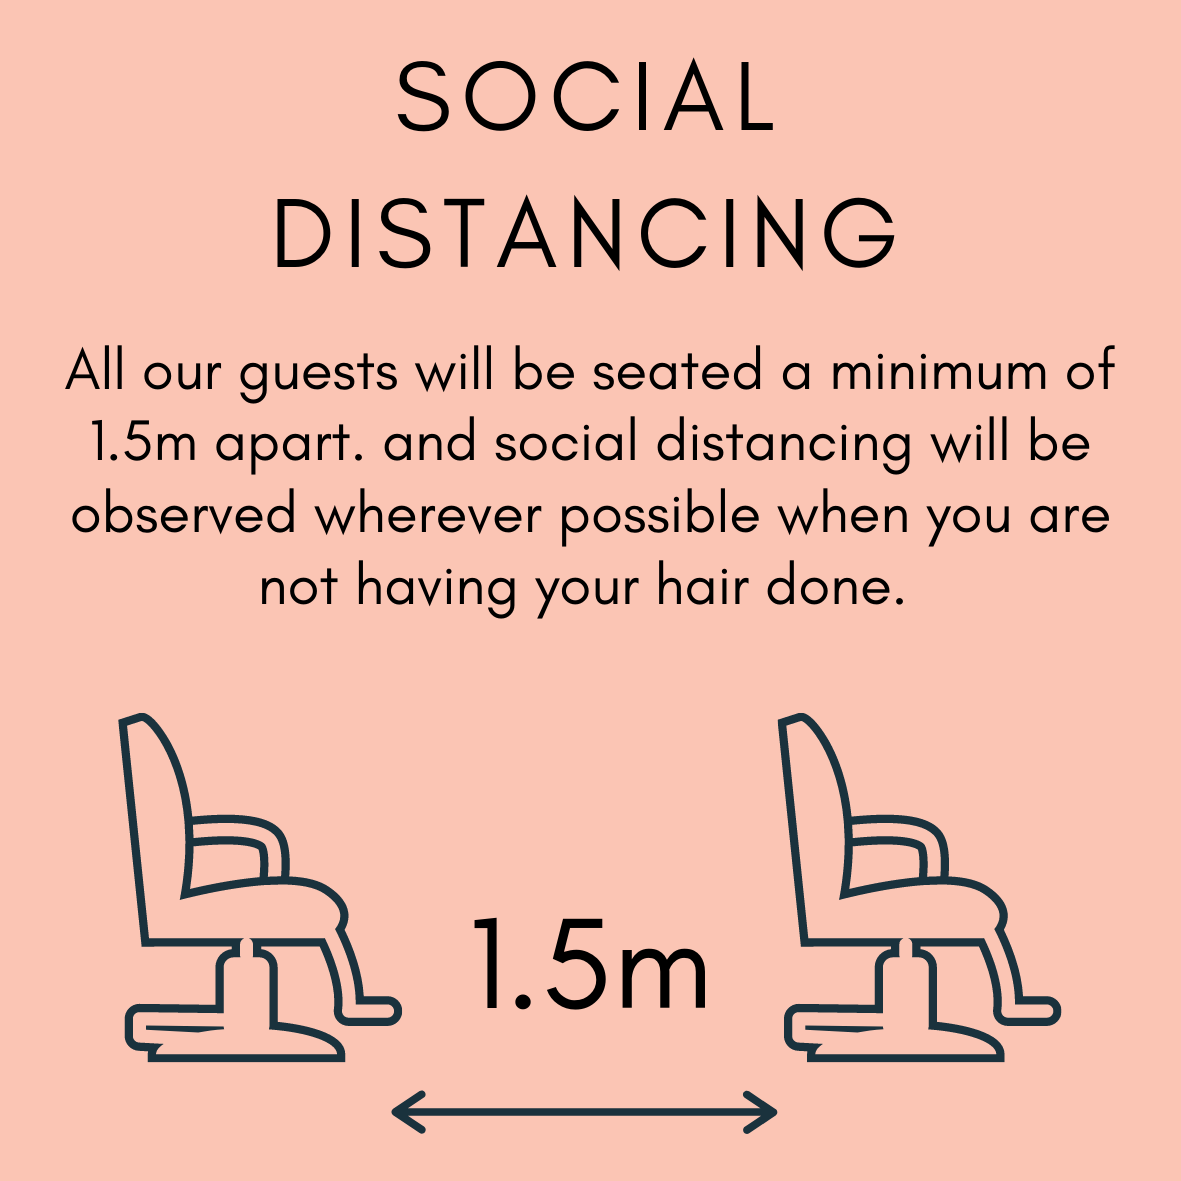 All guests are spaced a minimum of 1.5m apart at all times during their service at Zucci